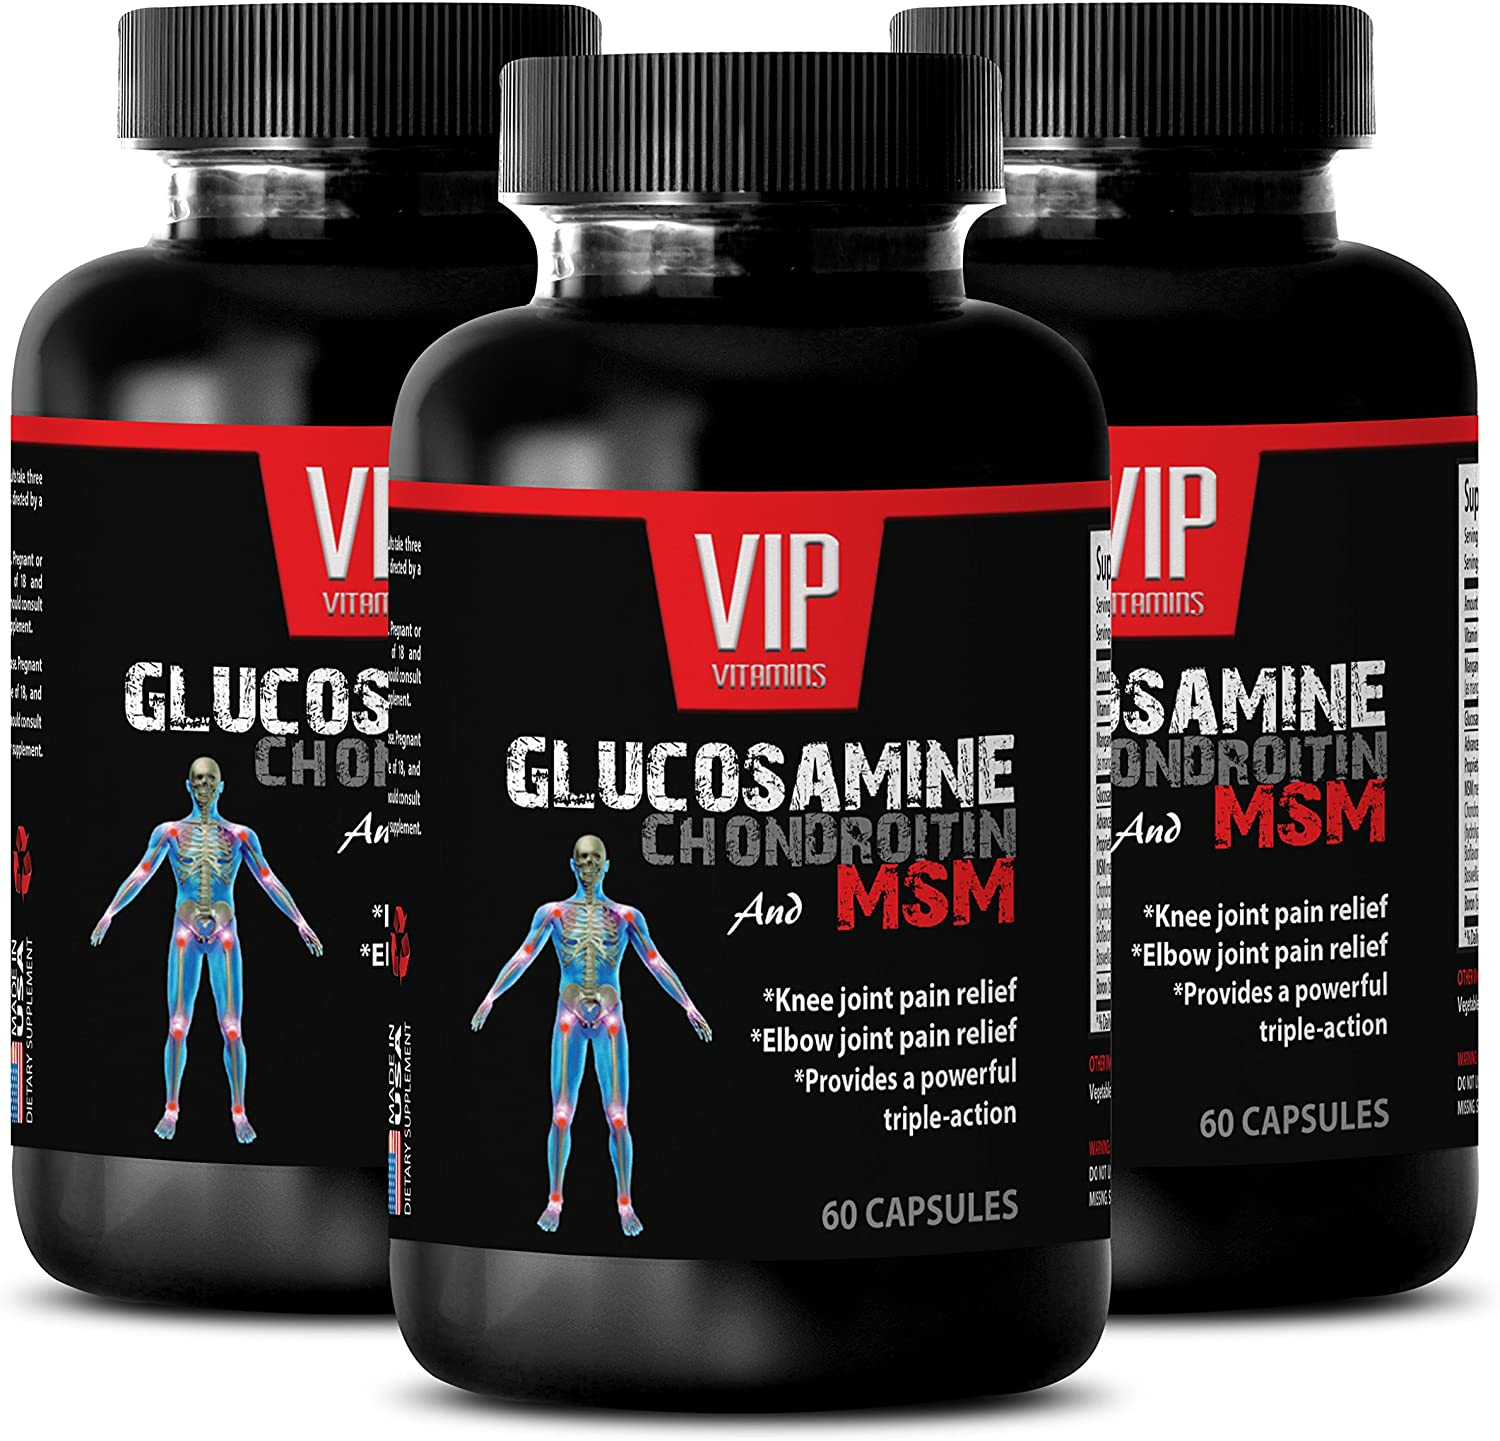 Immune Support Adults - GLUCOSAMINE CHONDROITIN & MSM 3200MG - msm Joint - 3 Bottles 180 Capsules